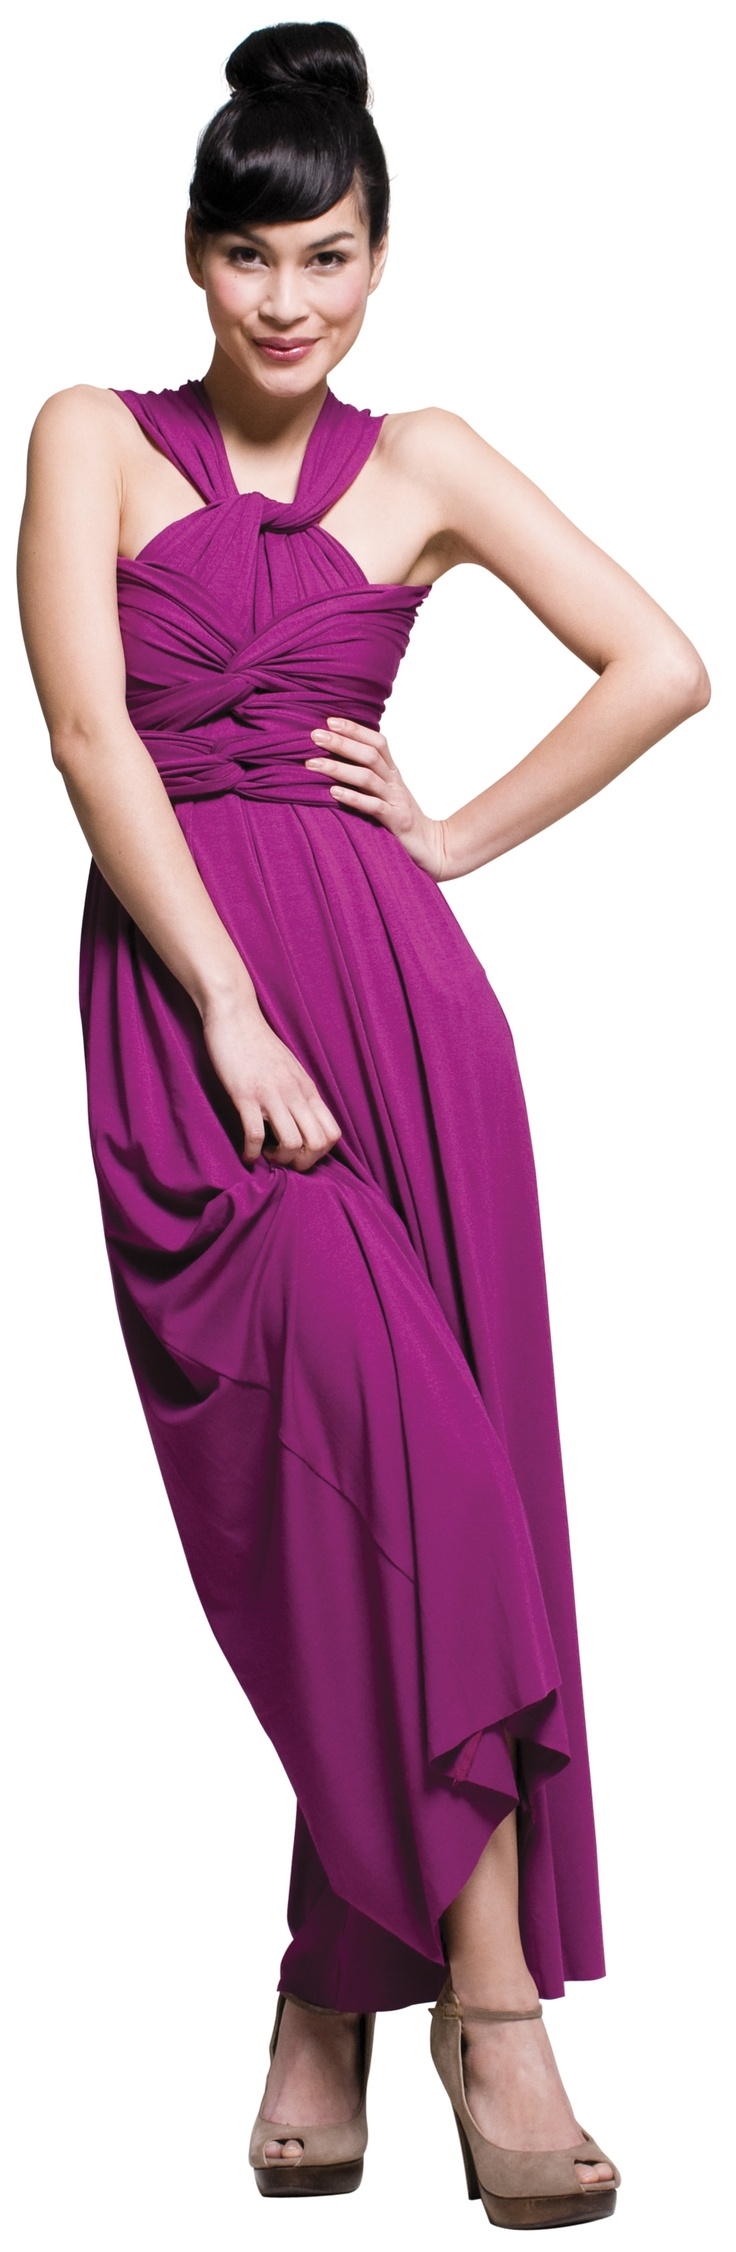 324 best Variation images on Pinterest | Evening gowns, Bridesmaid ...